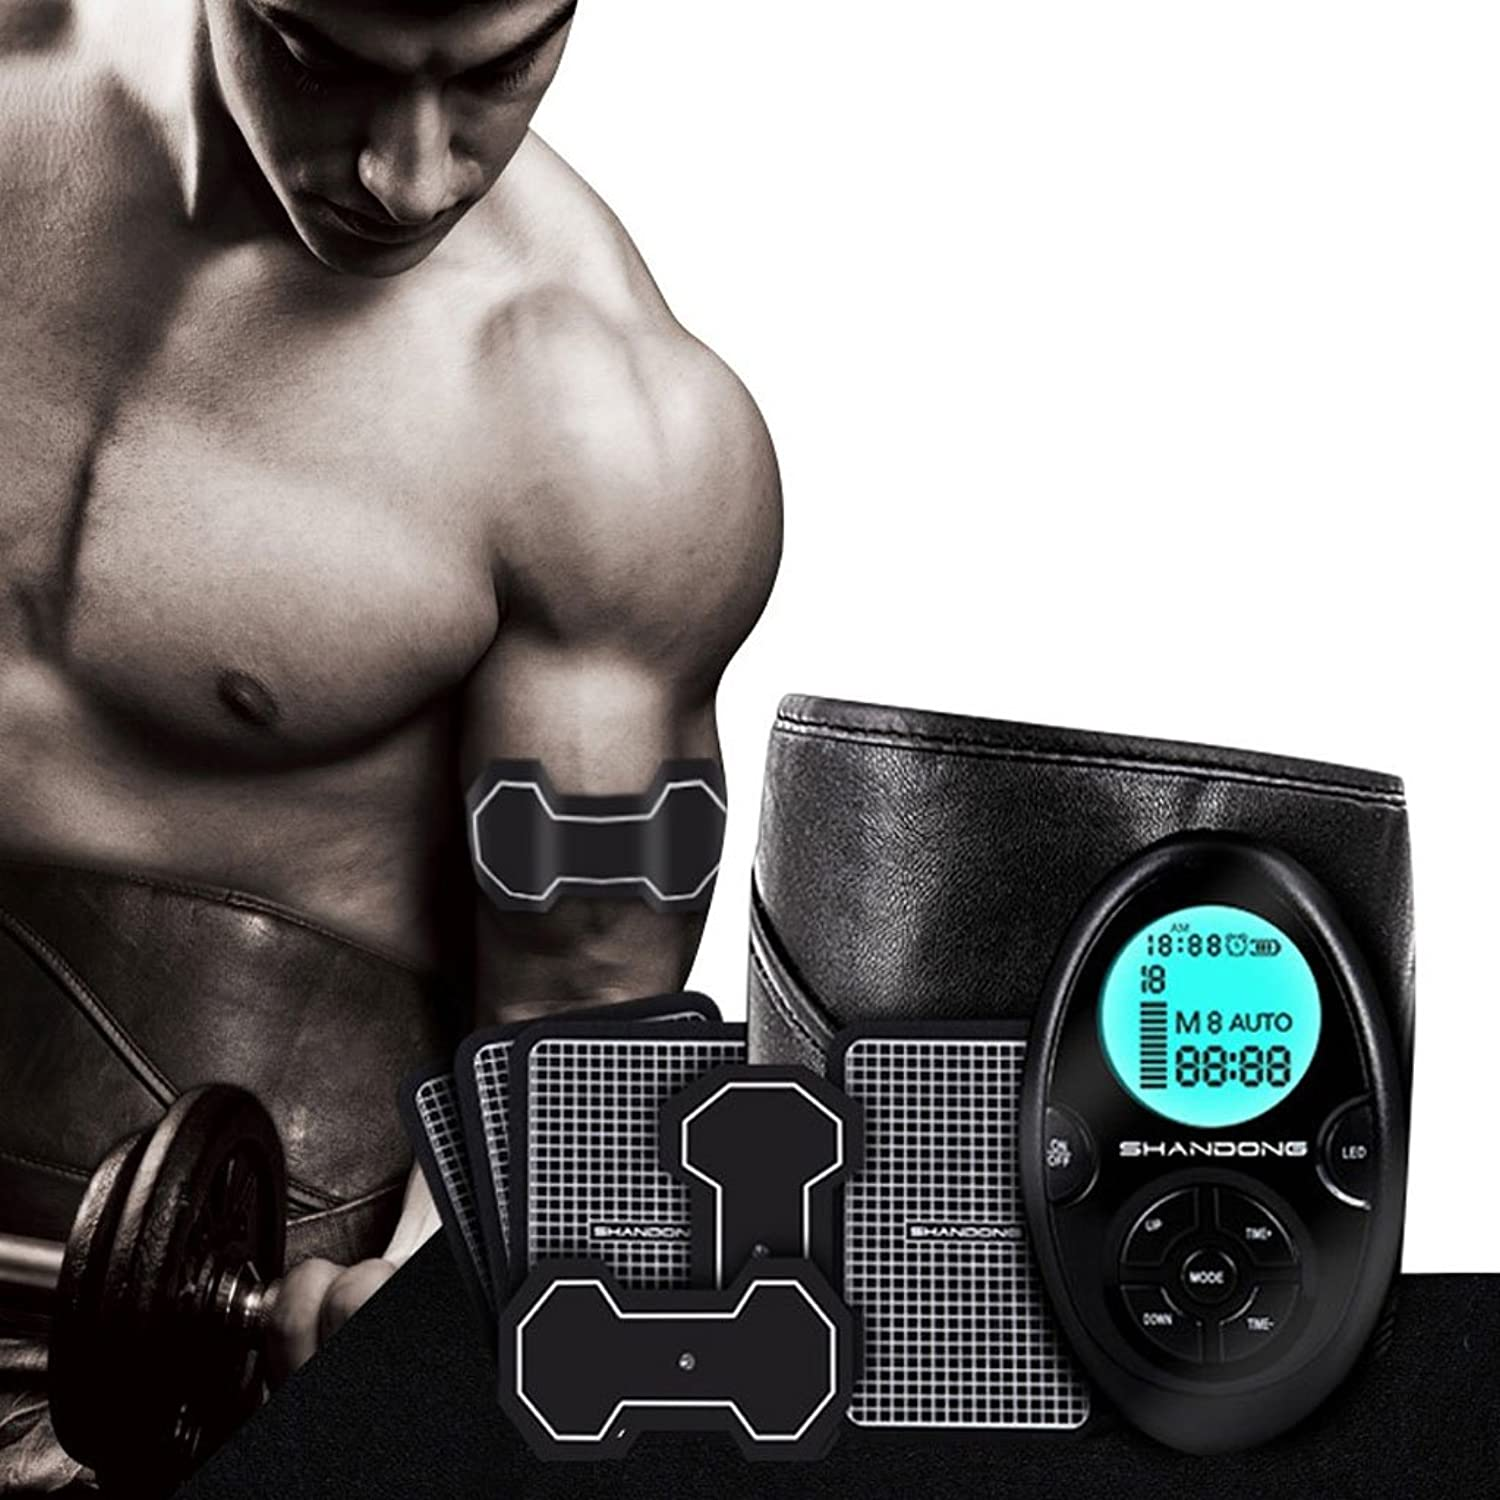 ABS Stimulator Abdominal trainer and abdominal simulator Abdominal training beltand muscle trainer Abdomen waist leg arm hip with9modesand10levels and USB charging, body fitness exercise equipment EMS